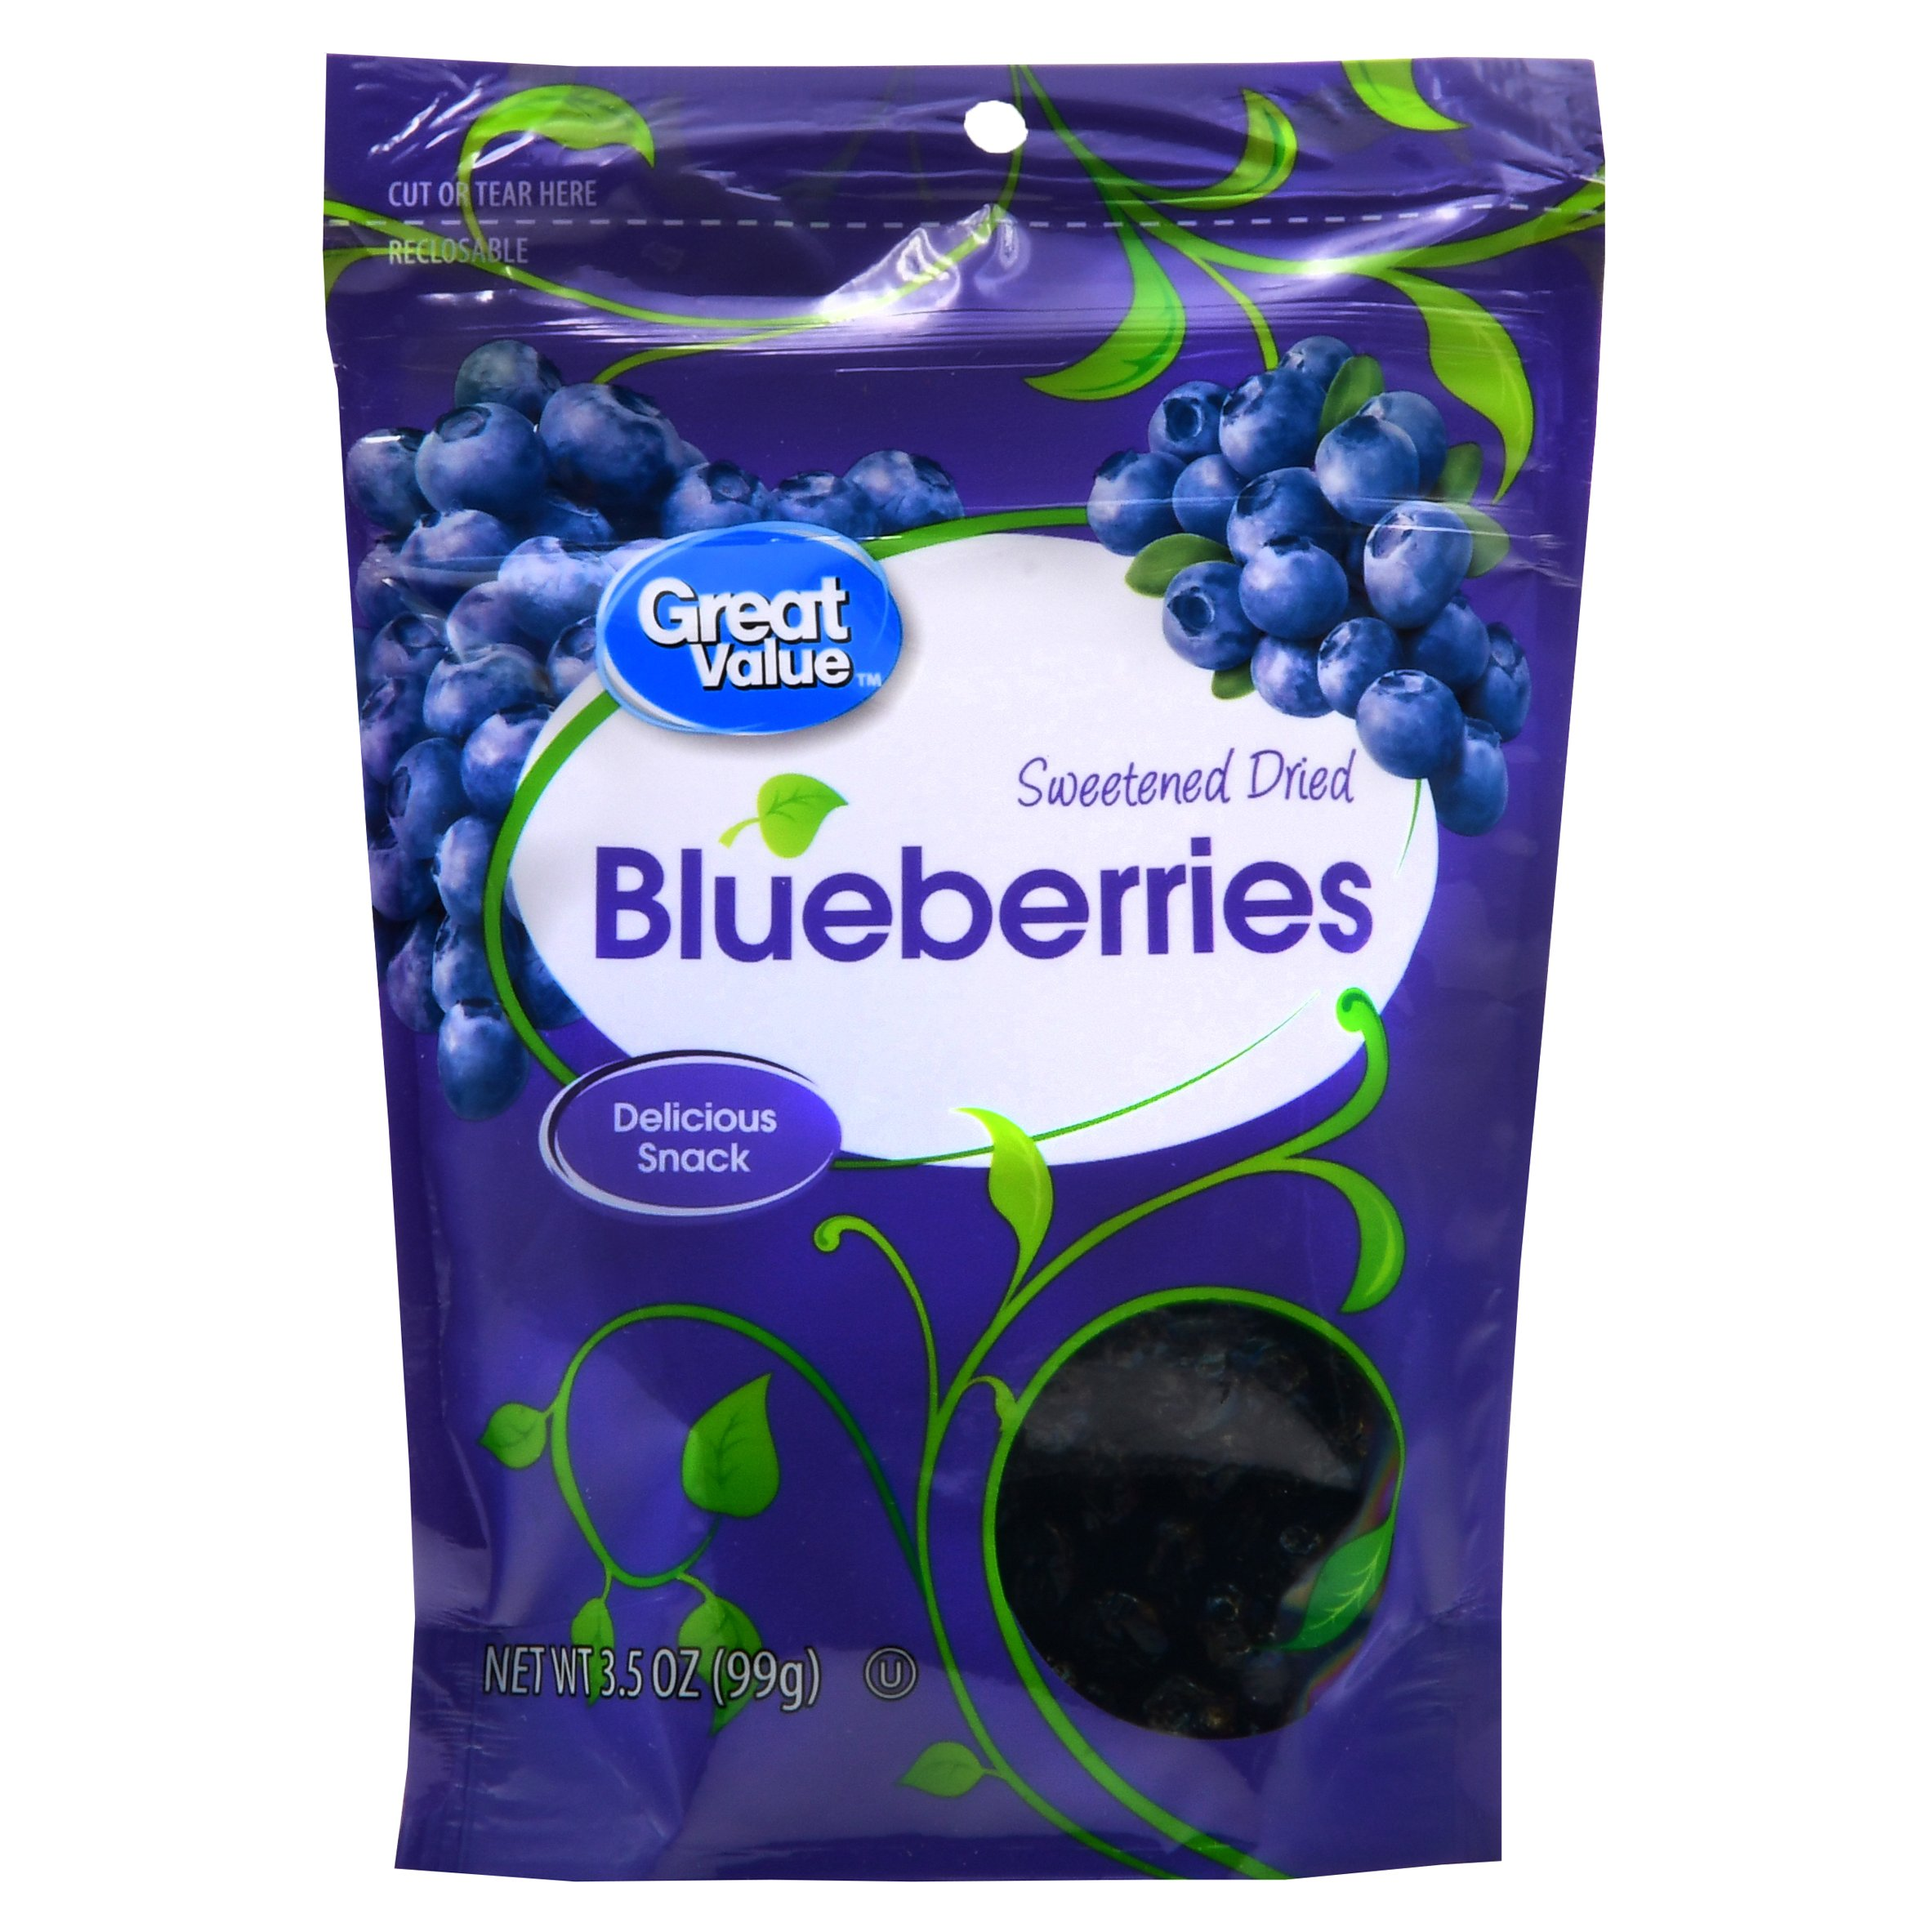 Great Value Sweetened Dried Blueberries 3.5 oz by Wal-Mart Stores, Inc.